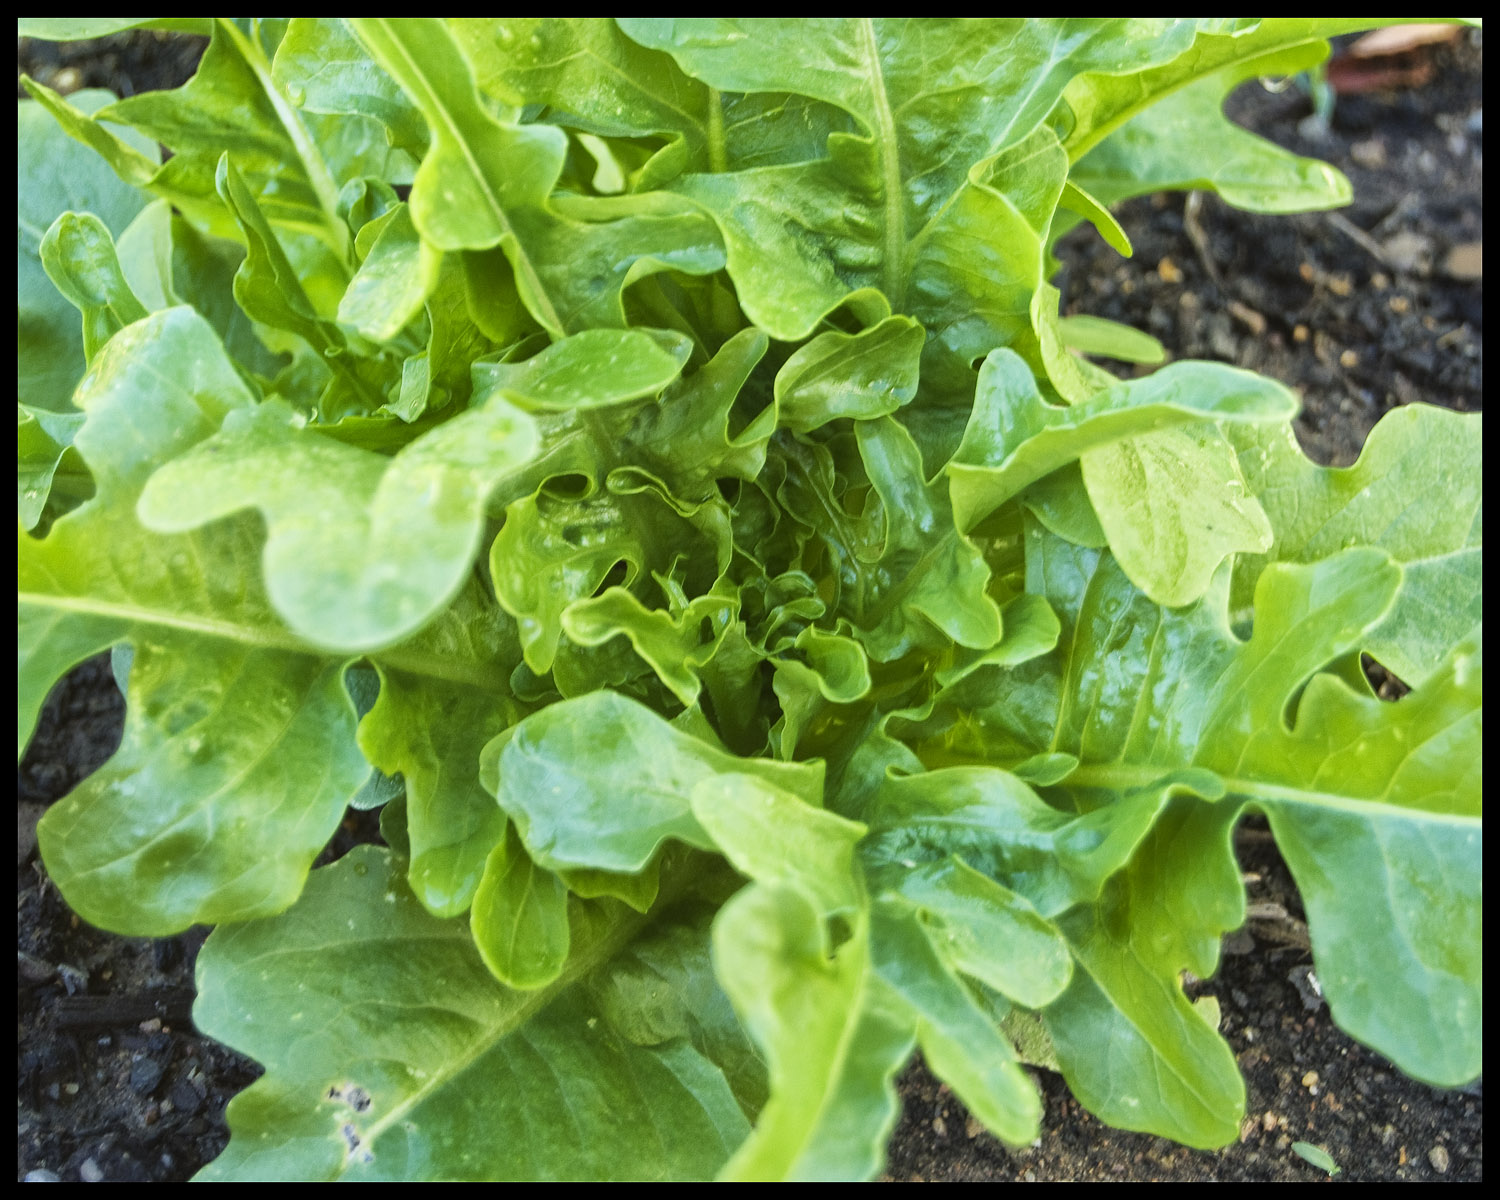 Our first tranche of loose leaf lettuce is now ready for harvest.